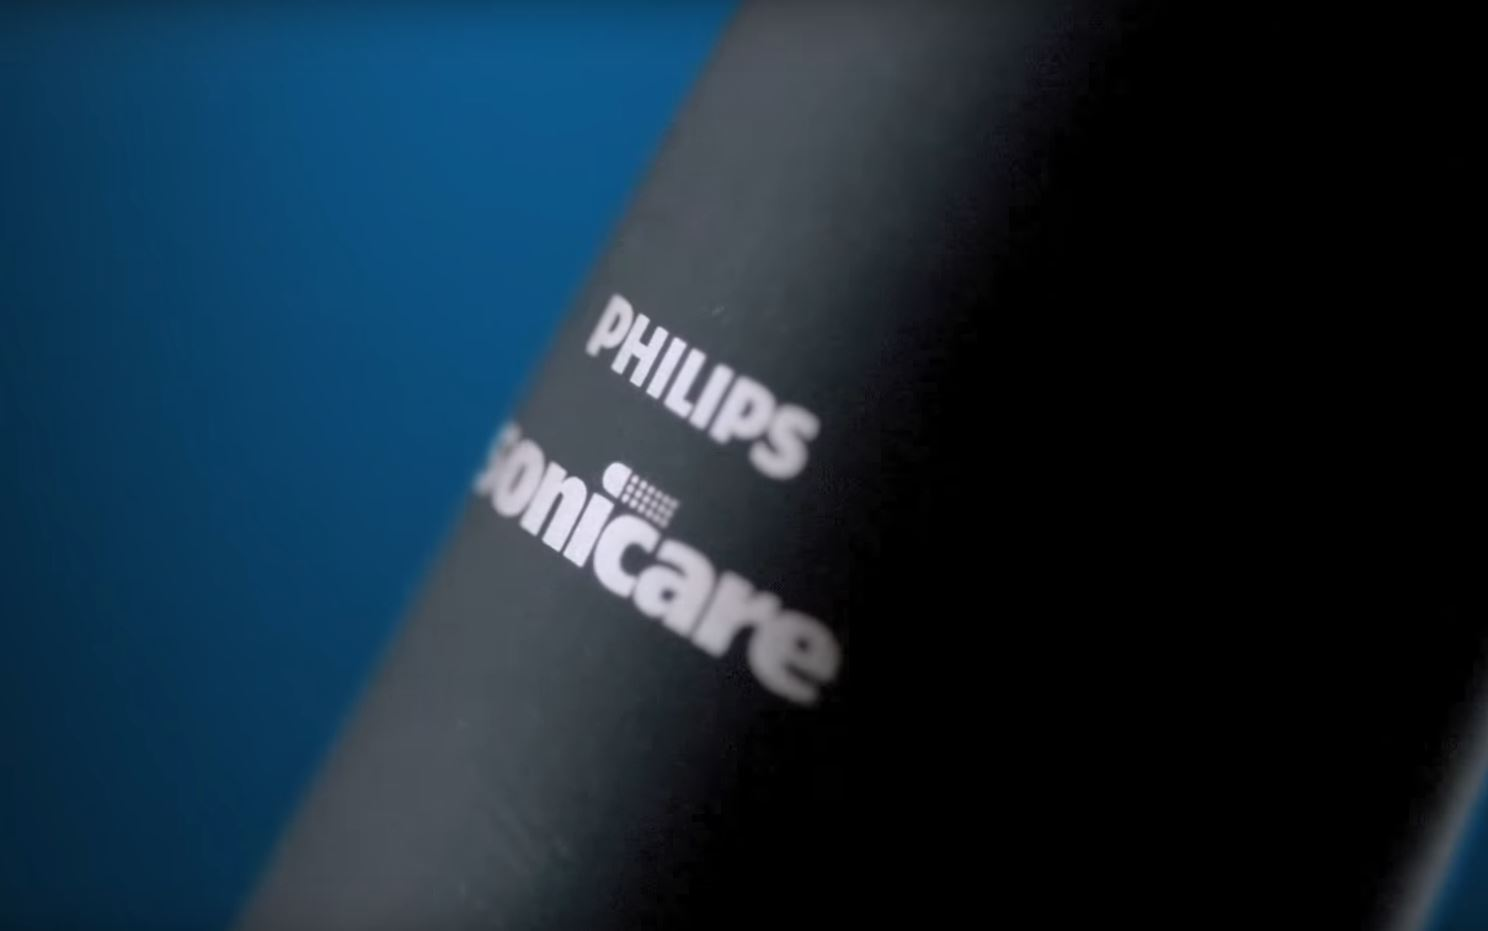 philips sonicare